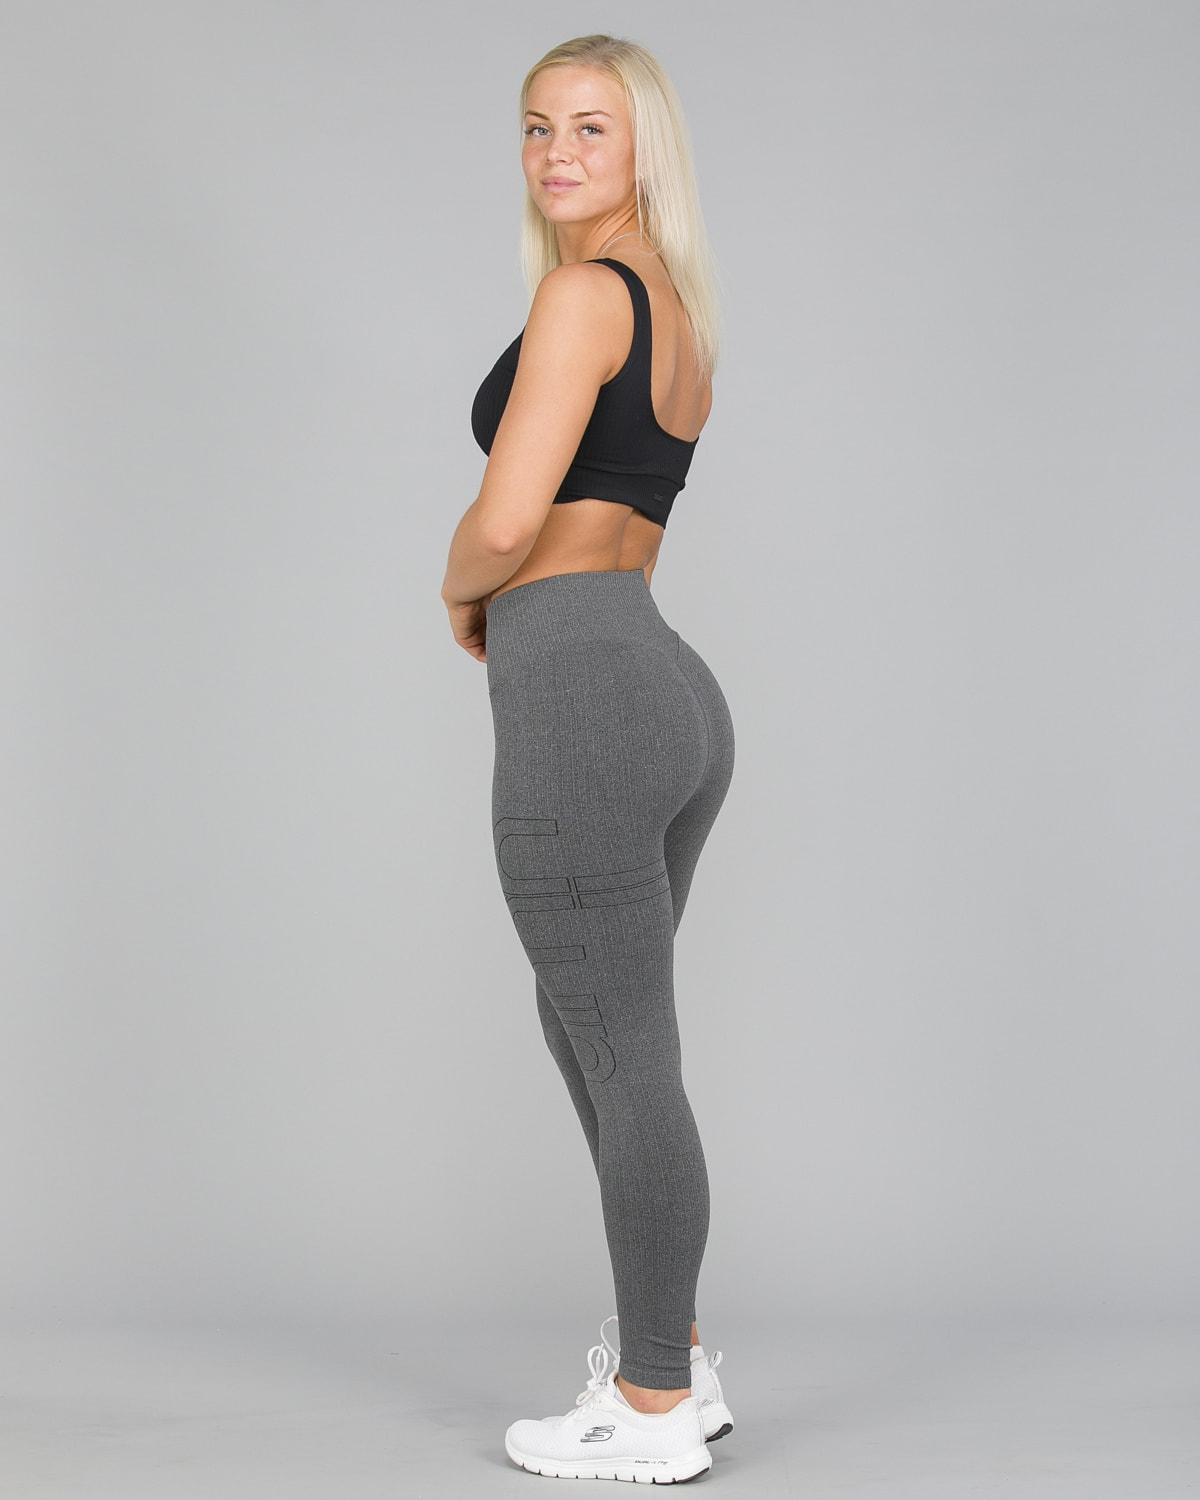 Aim'n Grey Ribbed Seamless Tights9